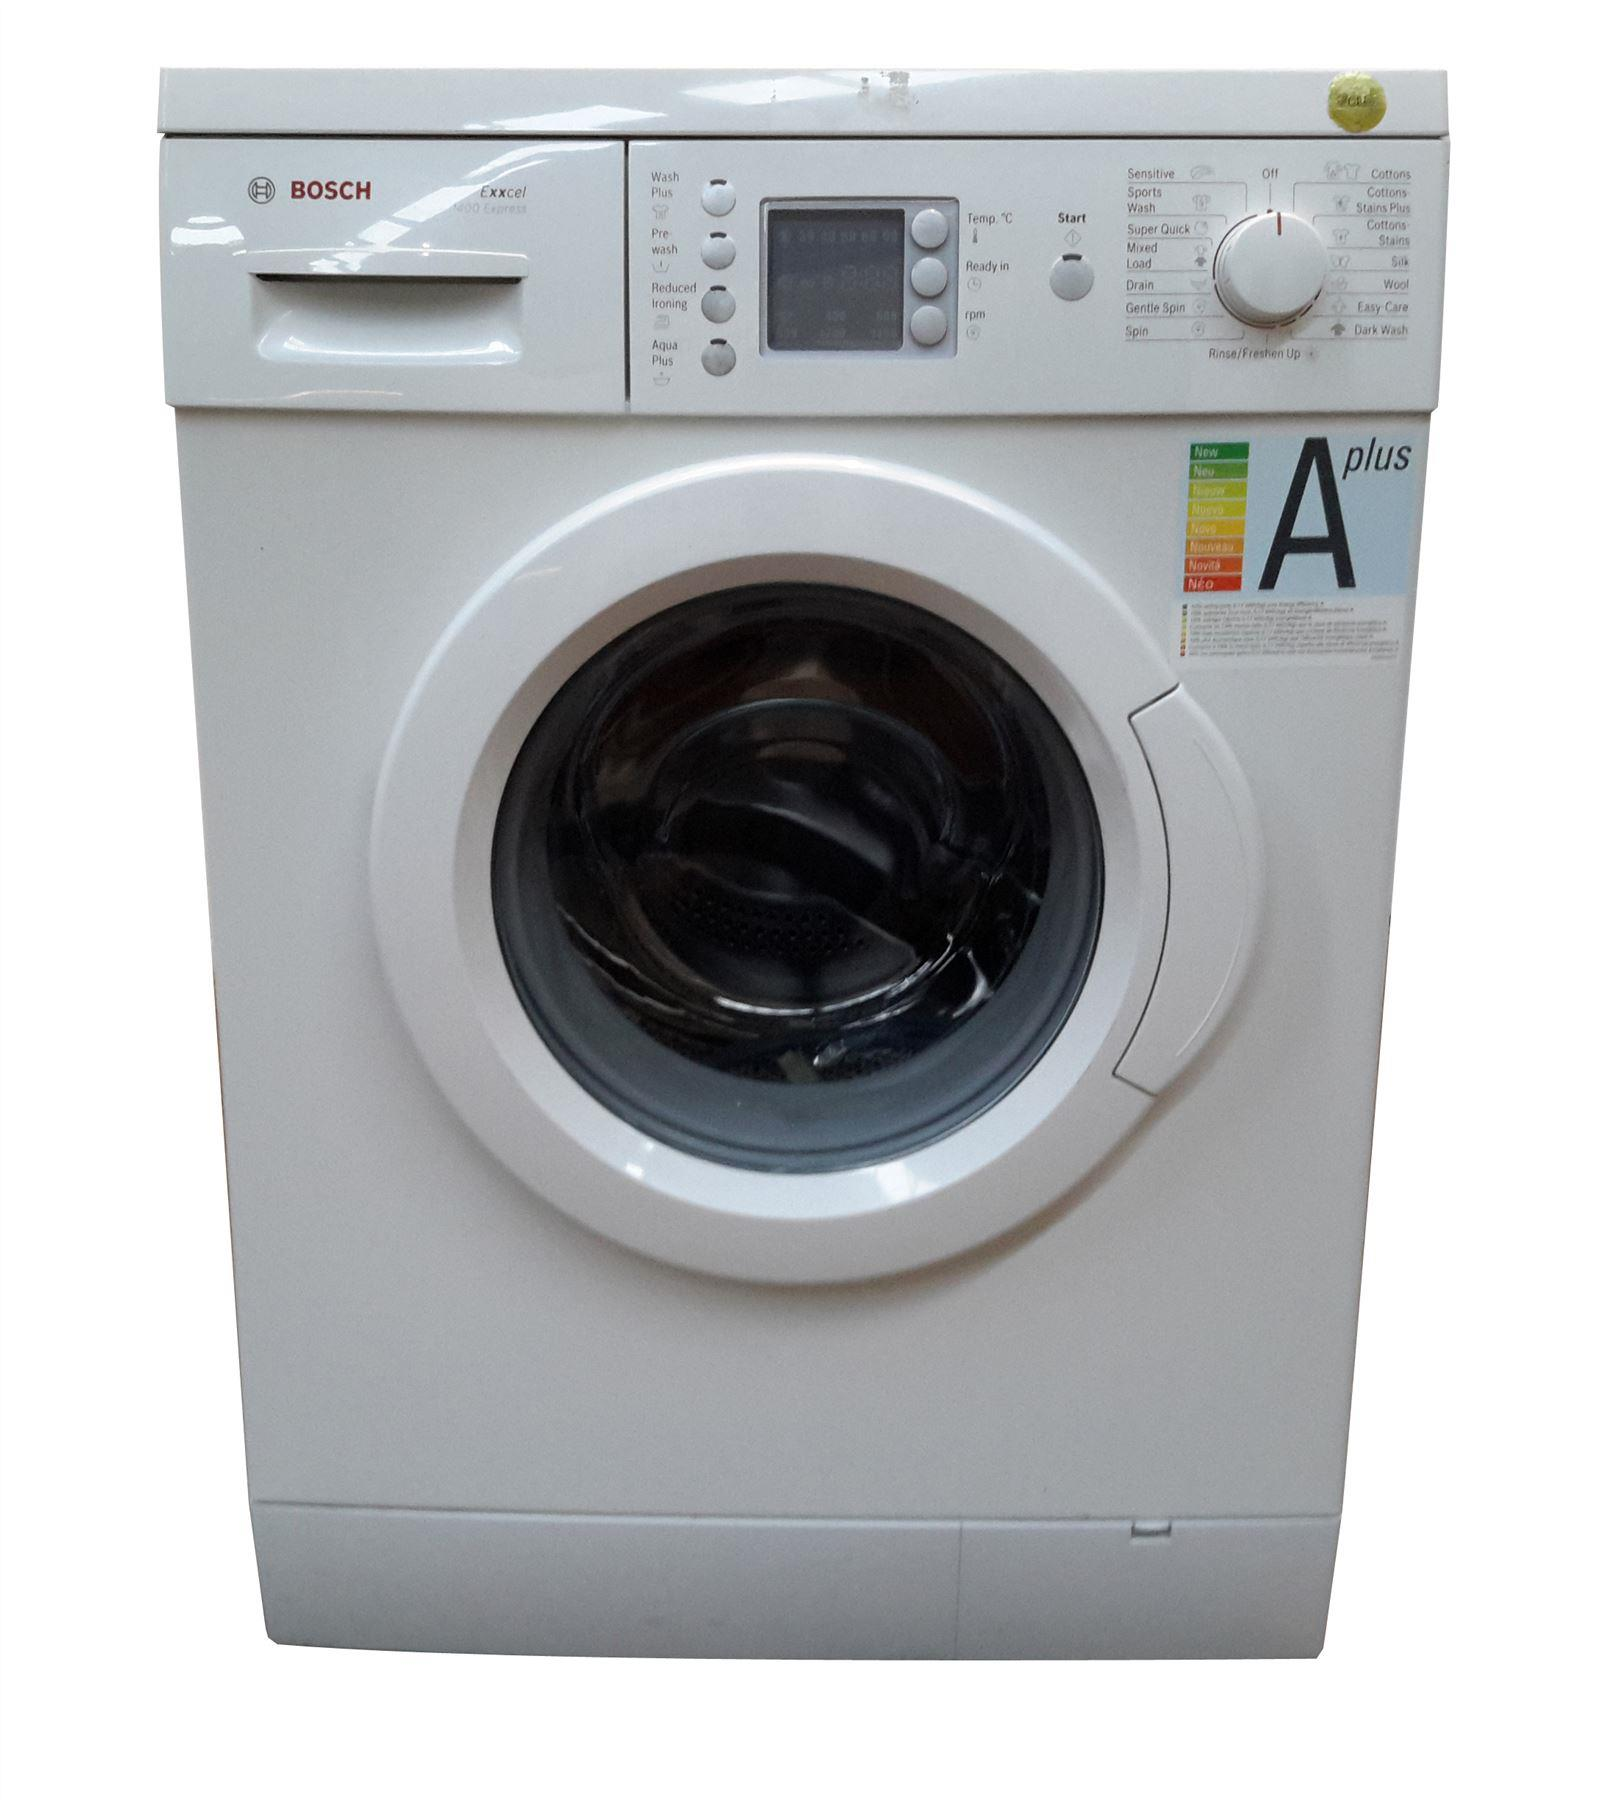 wae28465gb bosch exxcel 1400 washing machine white online store. Black Bedroom Furniture Sets. Home Design Ideas